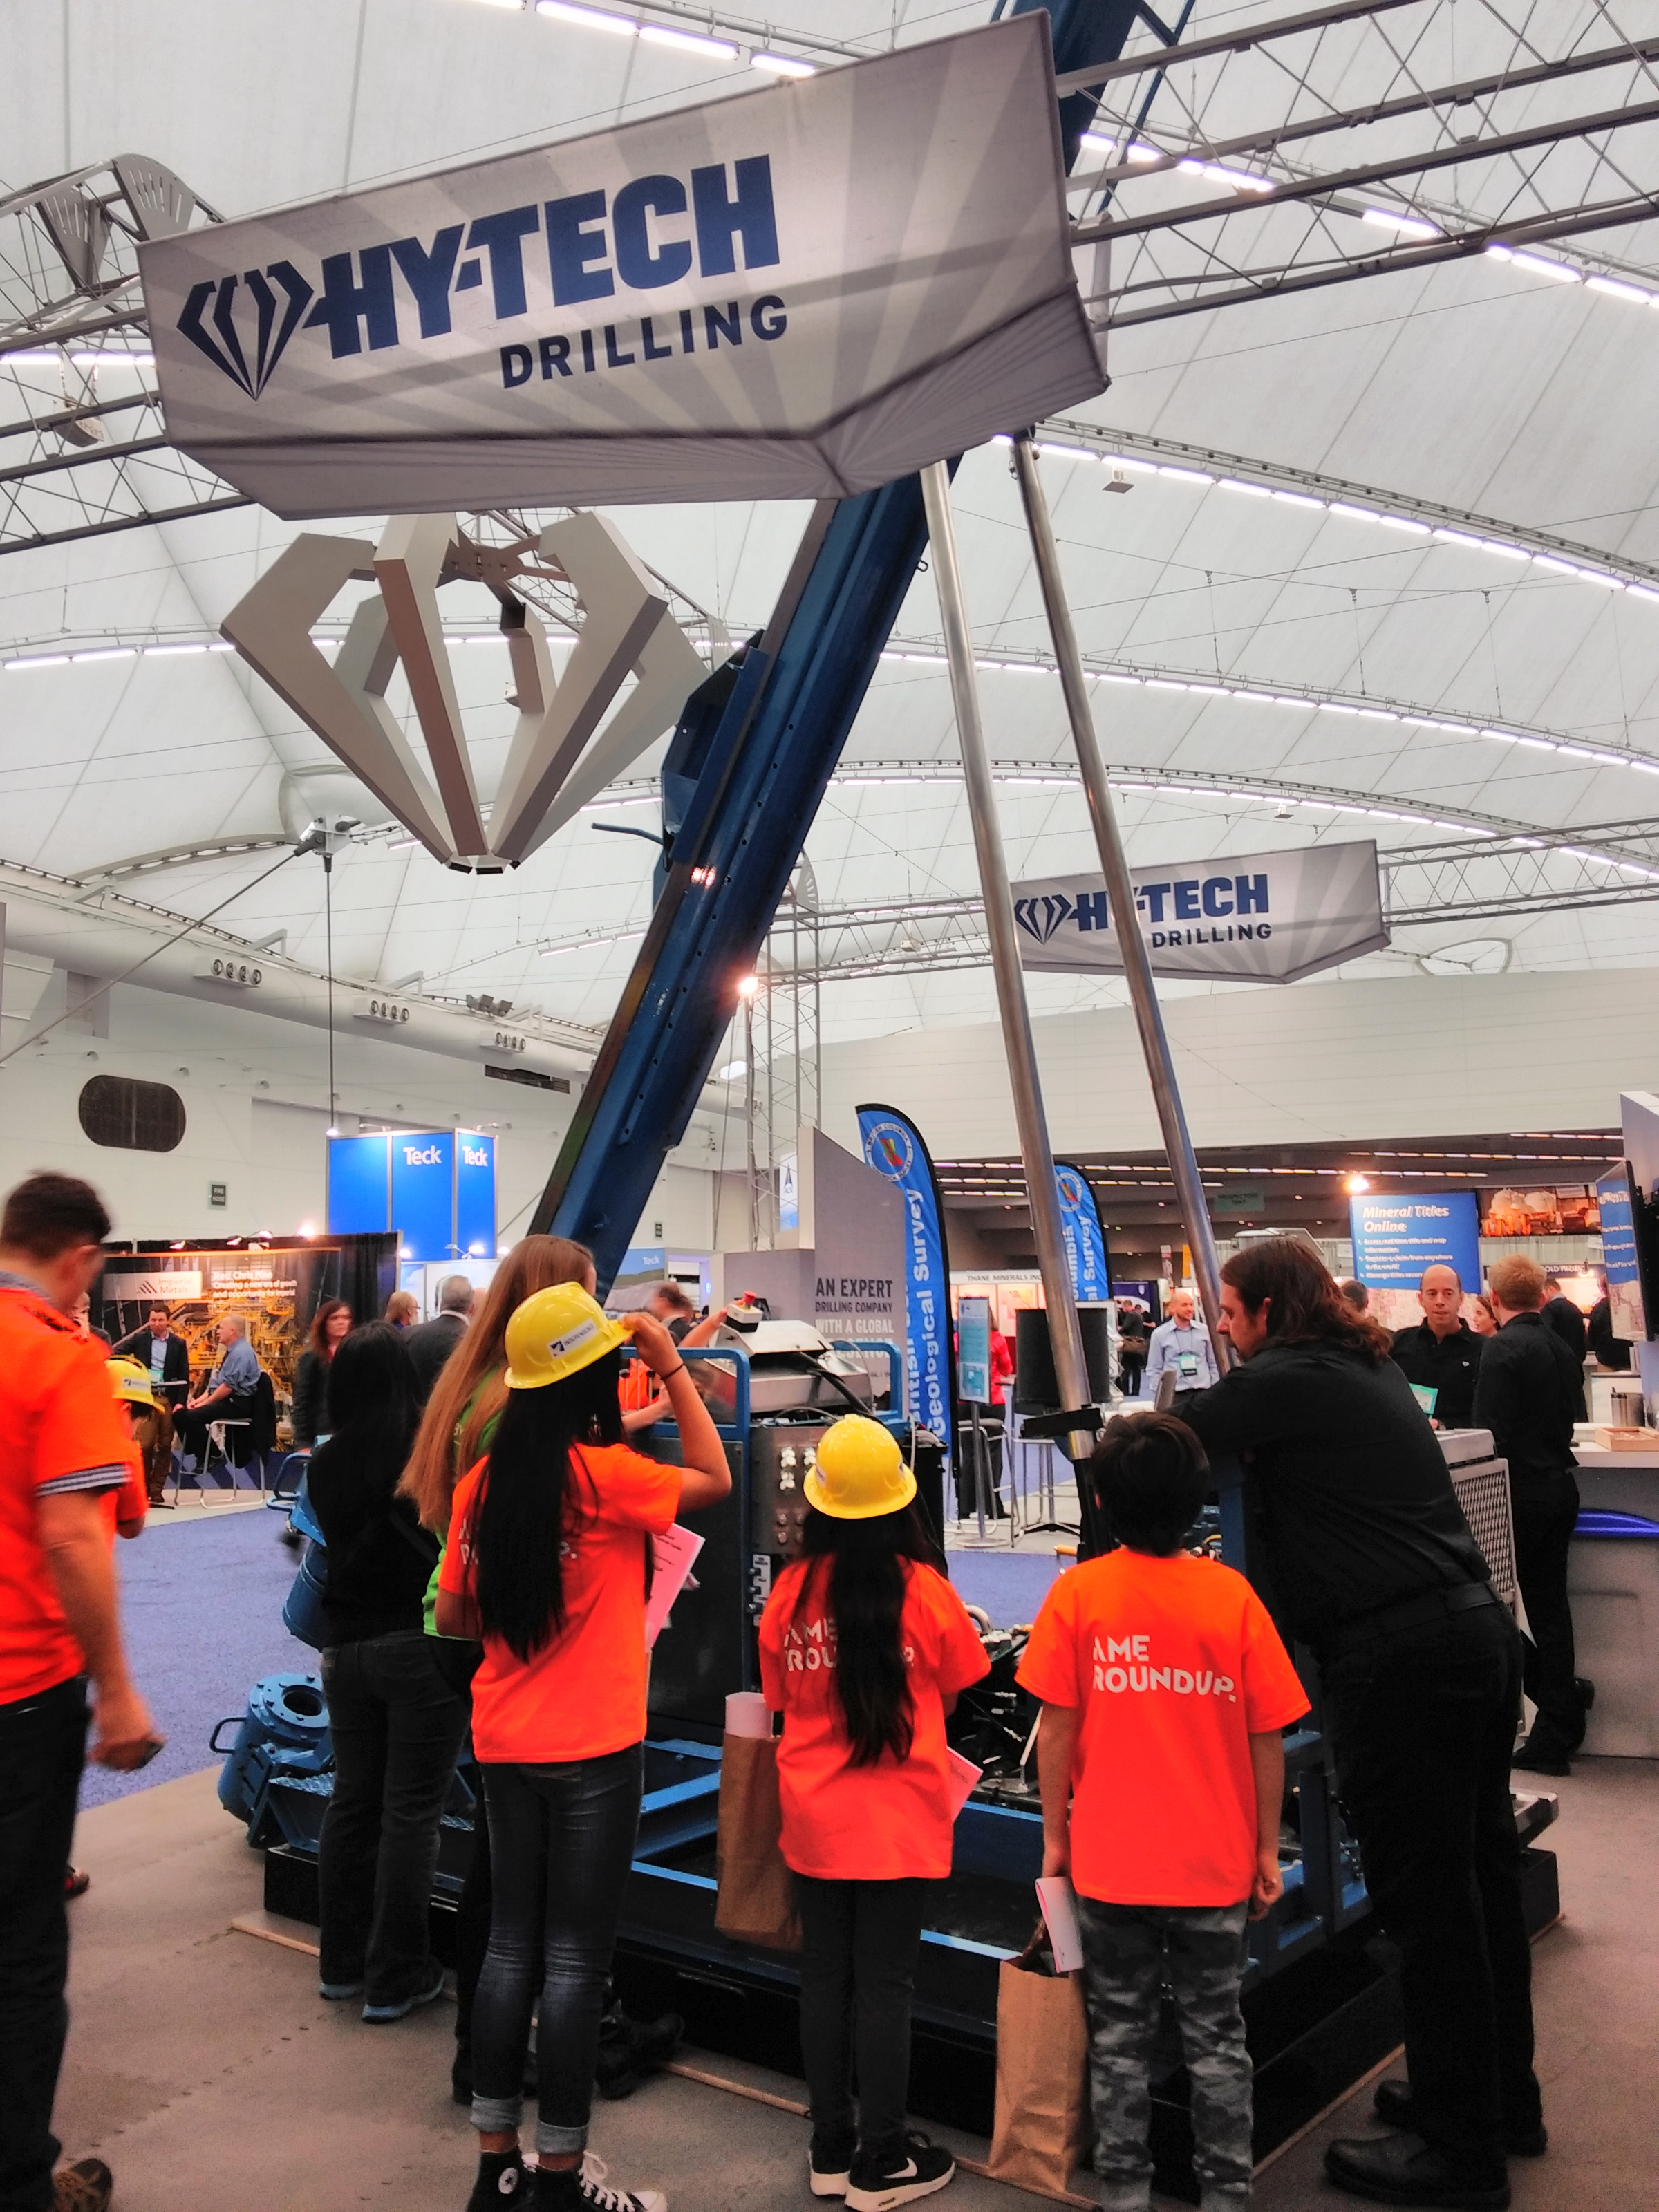 Hy-Tech Drilling Ltd. displayed a tall eye-catching drill. Students and their guide are given an explanation of how a drill is used in the field.